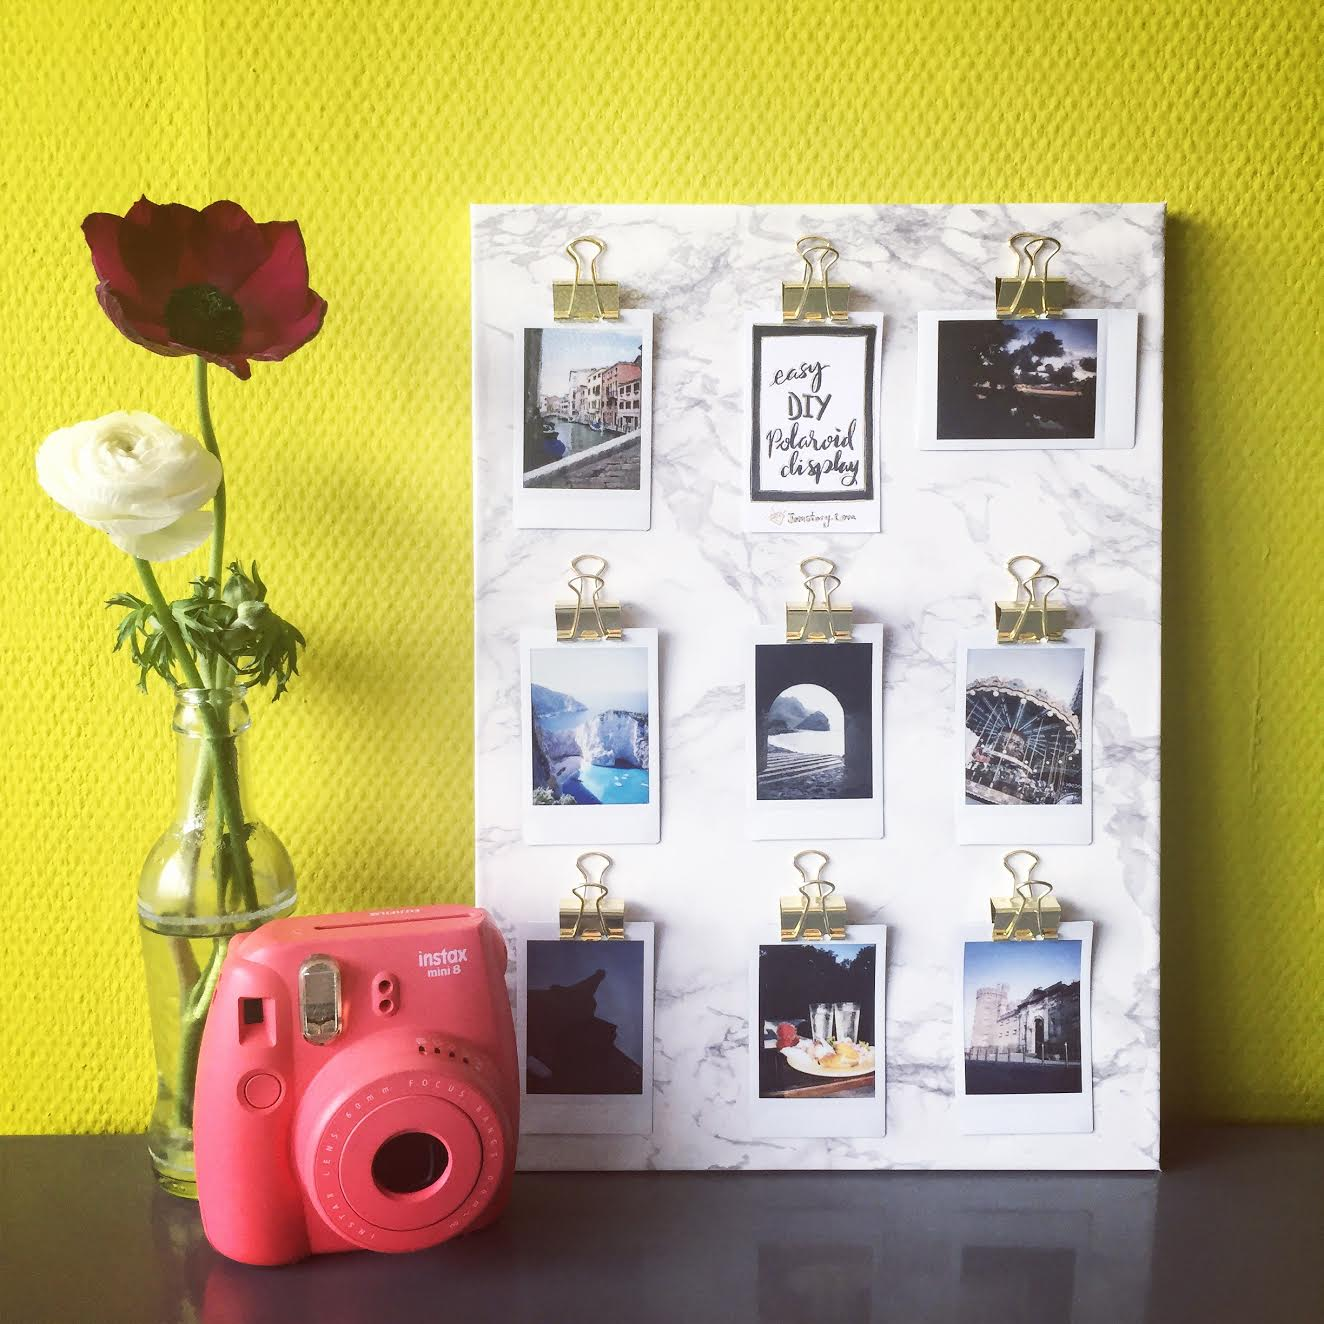 DIY Polaroid Clips Marble Display - via surelysimple.com